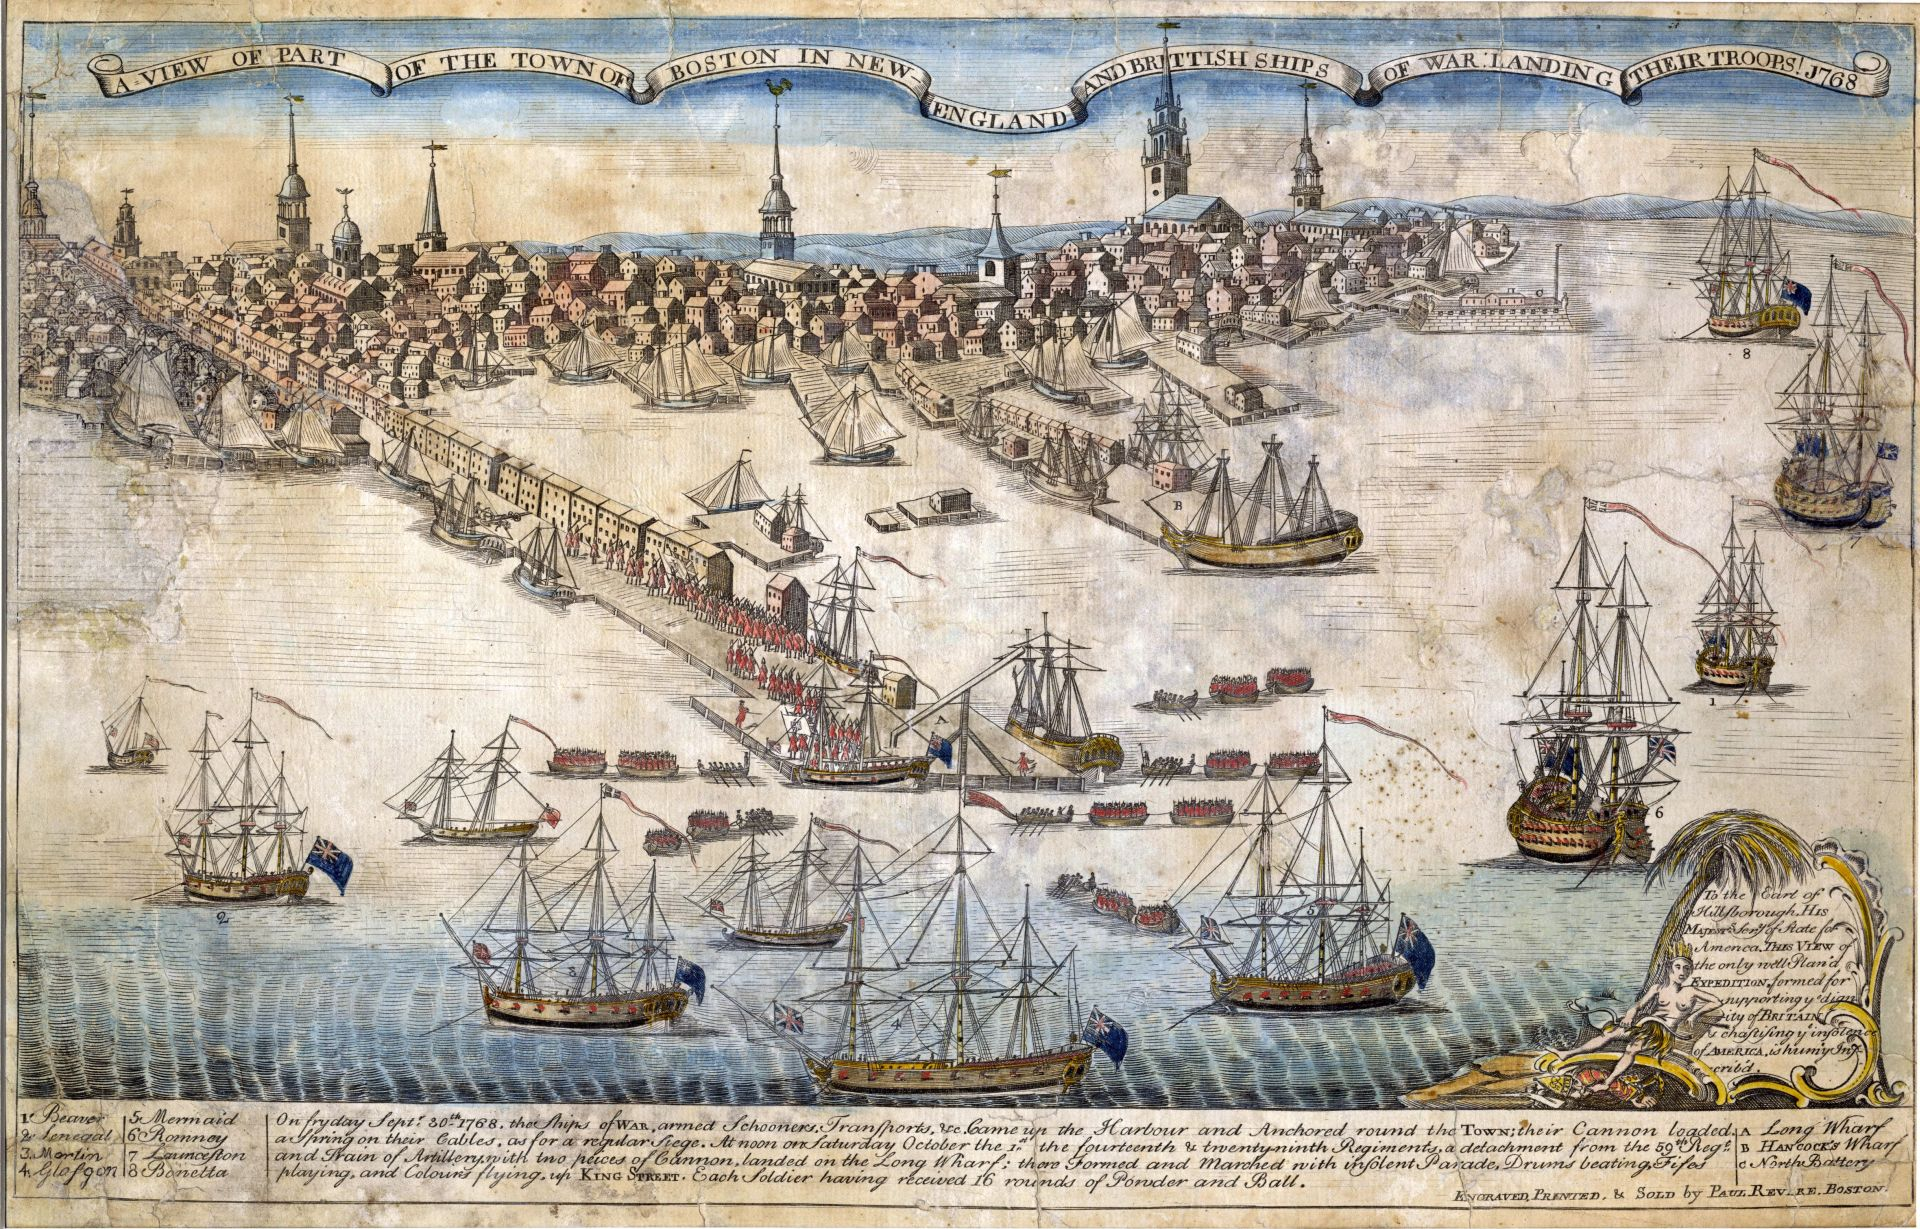 Paul Revere also published an engraving of the British troops landing in Boston harbor in 1768, a traumatic event for many inhabitants of the city.